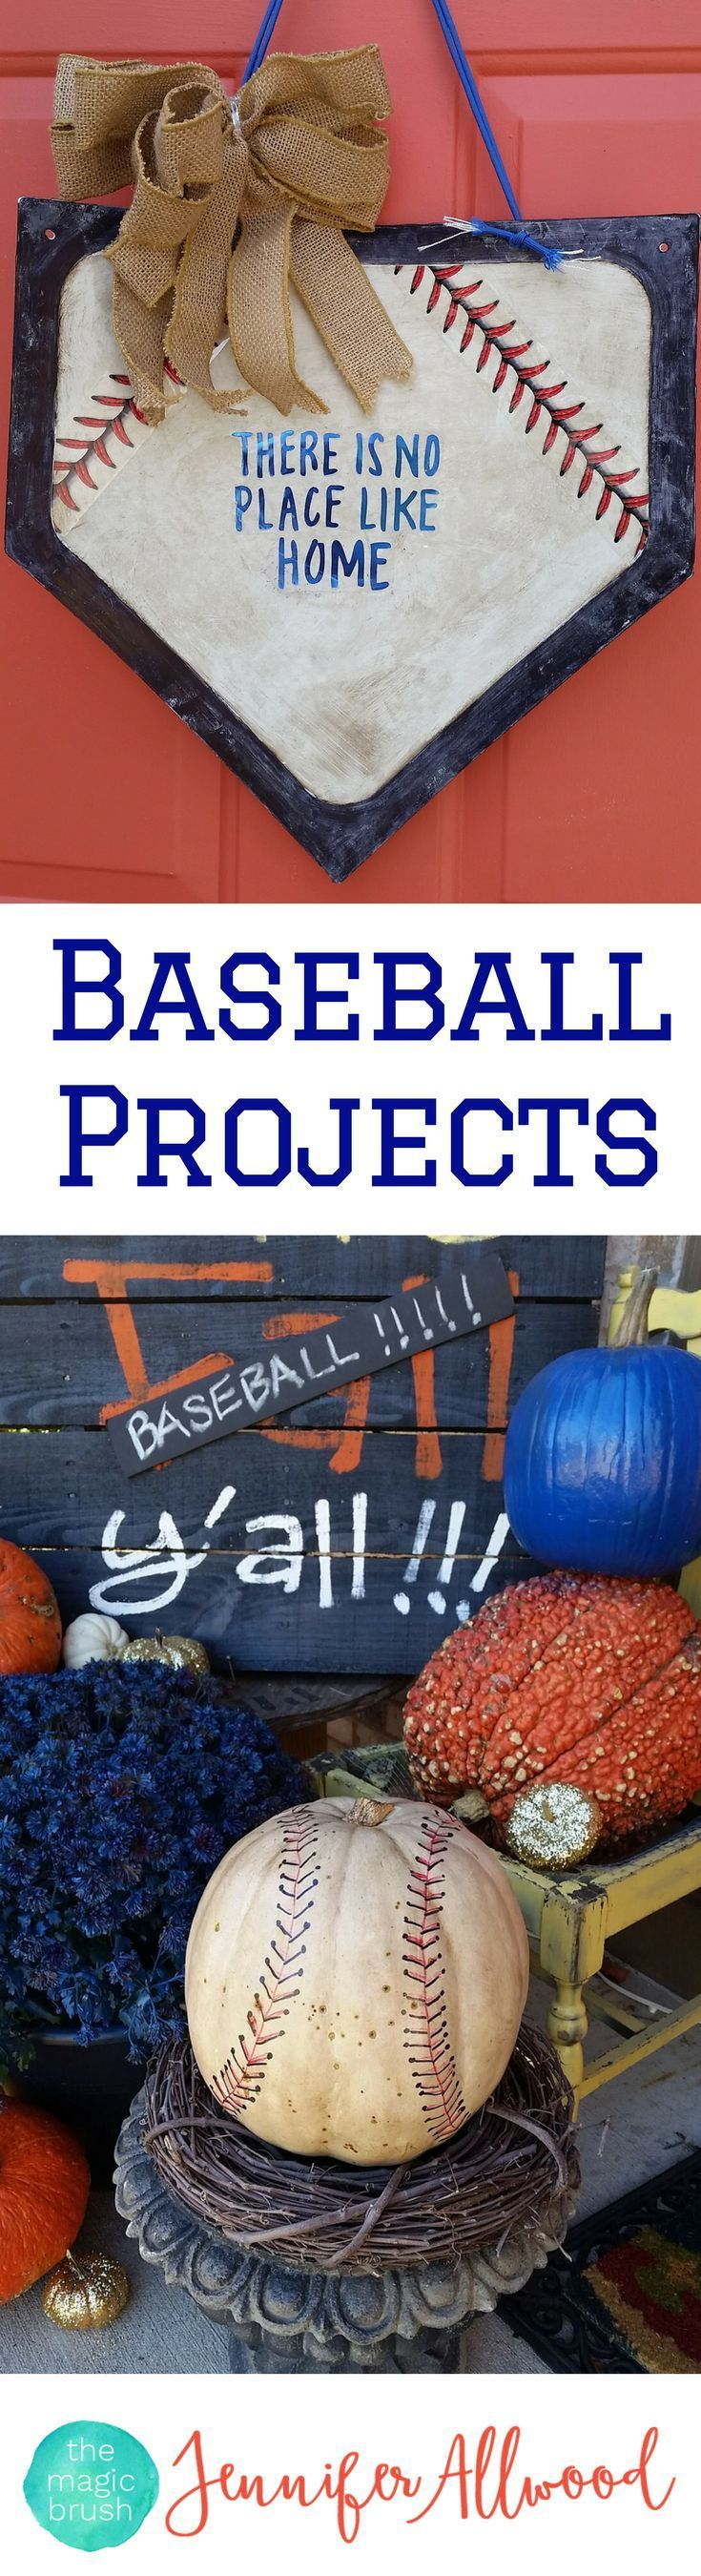 DIY Baseball Projects and Baseball Decor by theMagicBrushinc.com Fun ideas for door and porch decorations, baseball pumpkins,  baseball-themed bedrooms and more! Magic Brush #diy #diyhomedecor #howto